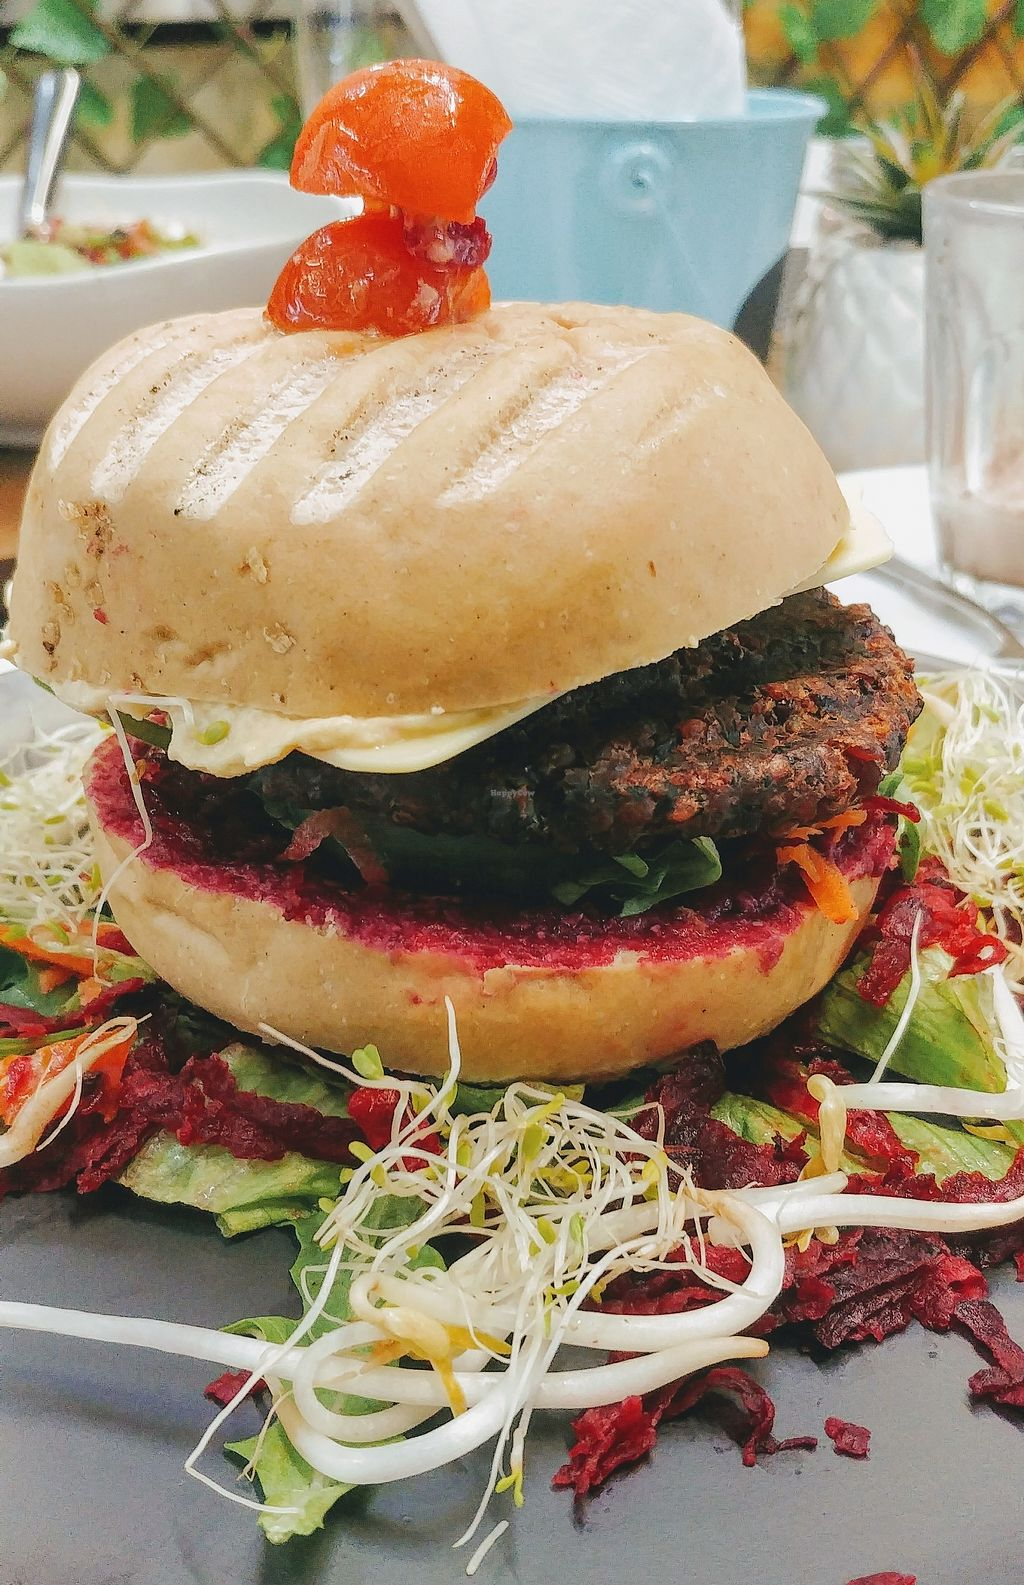 """Photo of Back2Nature Cafe  by <a href=""""/members/profile/karlaess"""">karlaess</a> <br/>Beetroot burger <br/> March 24, 2018  - <a href='/contact/abuse/image/115263/375194'>Report</a>"""